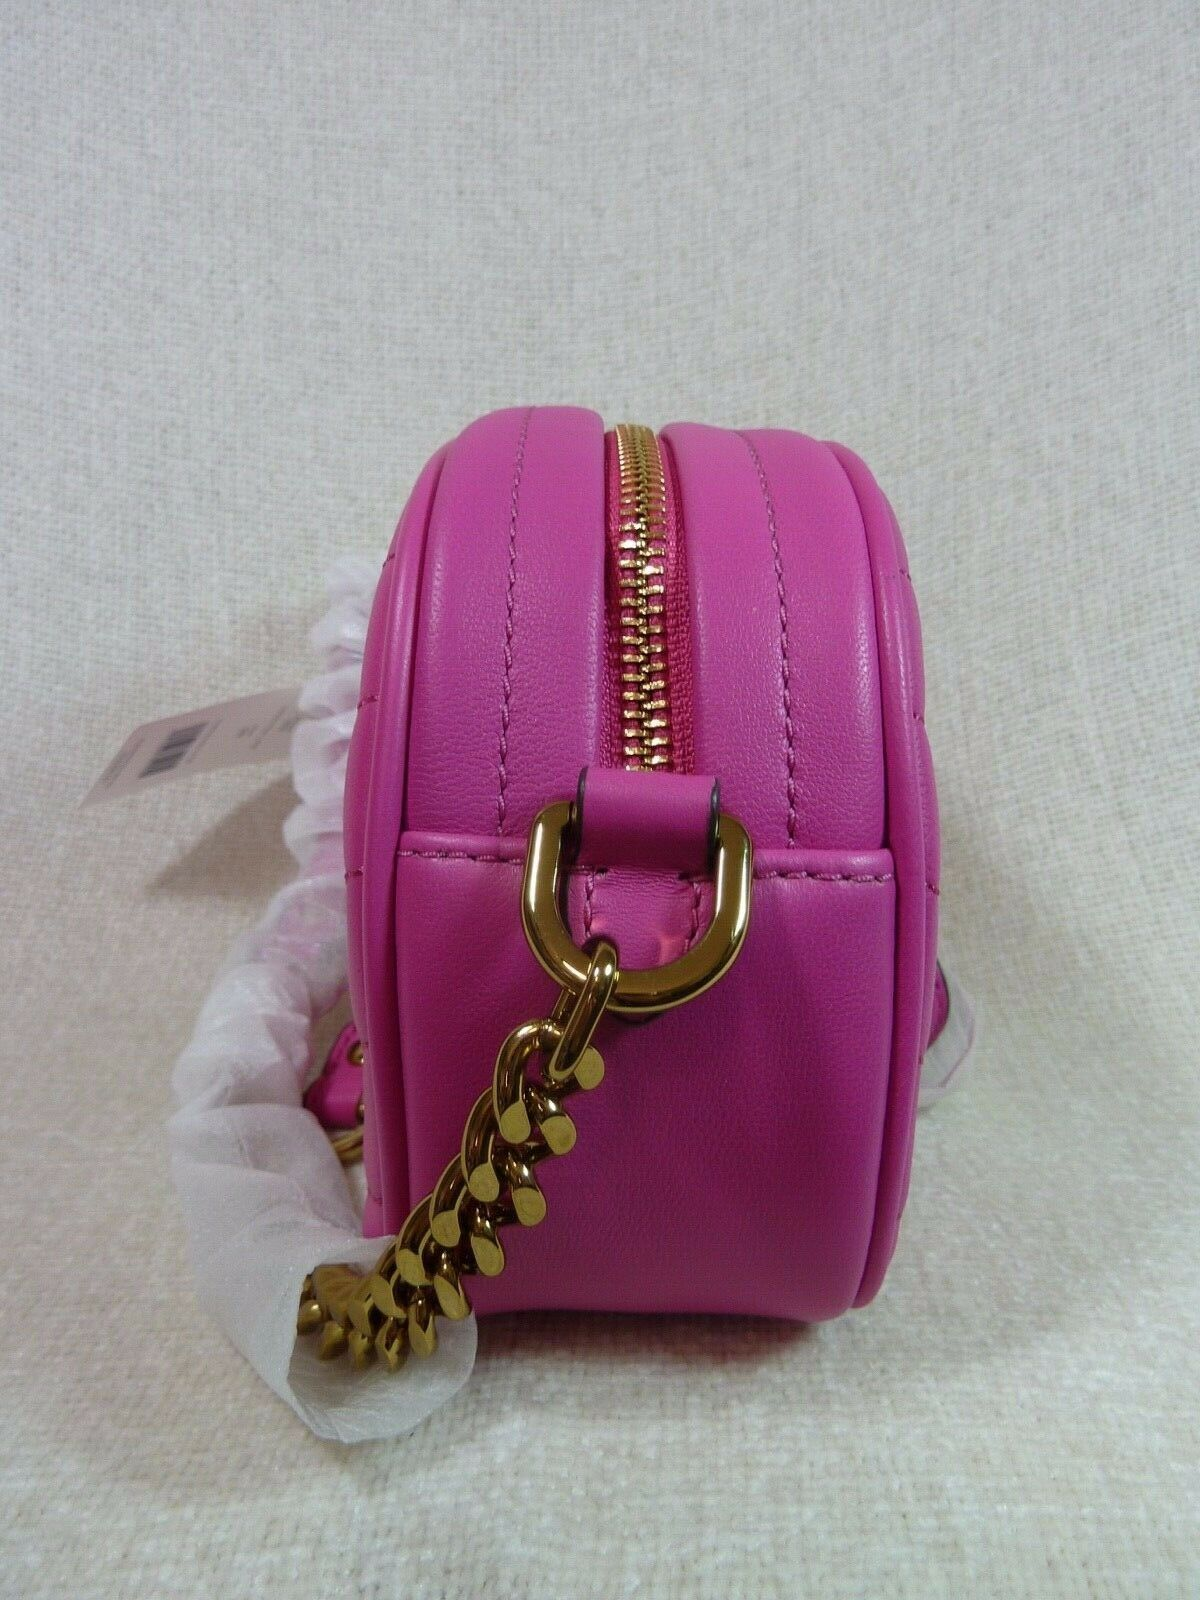 NWT Tory Burch Crazy Pink Kira Chevron Small Camera Bag $358 image 3